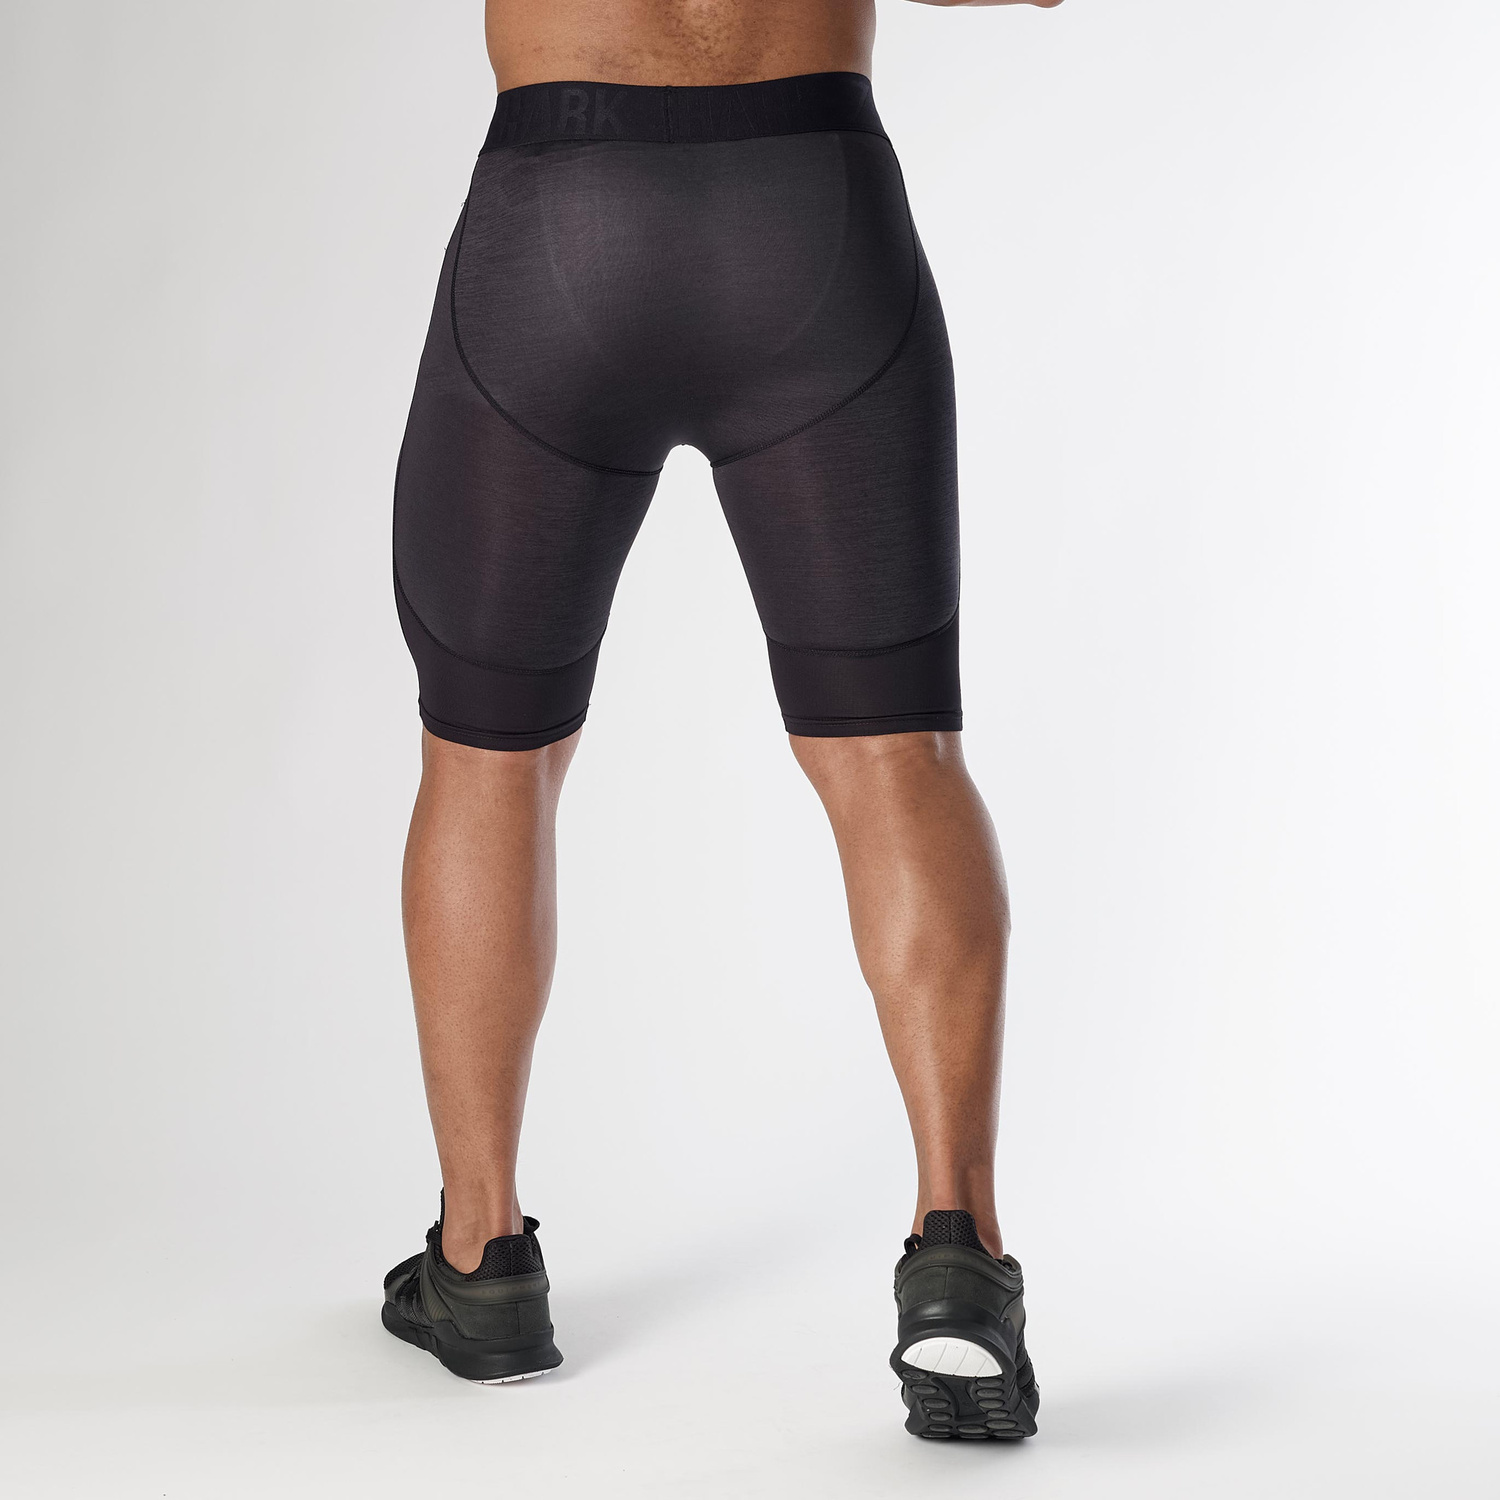 GYMSHARK☆ ELEMENT BASELAYER SHORTS−BLACK MARL